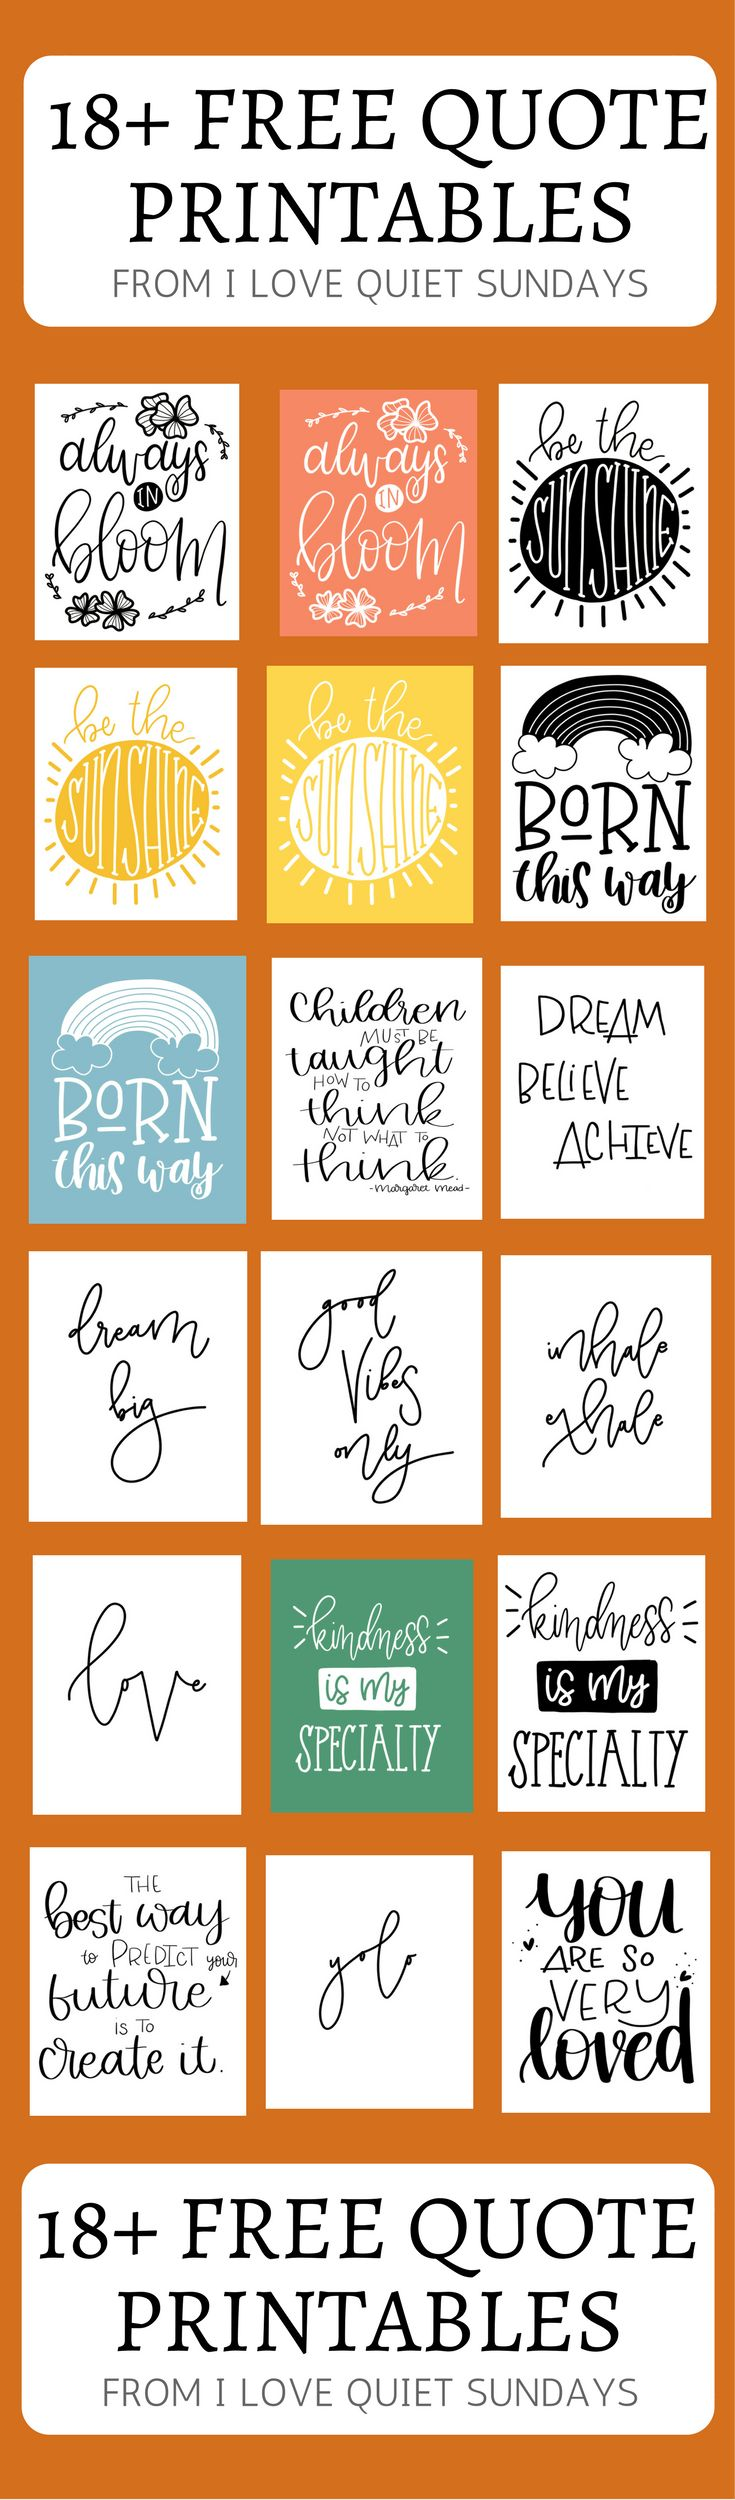 Best 25+ Free printable quotes ideas on Pinterest | Free ...